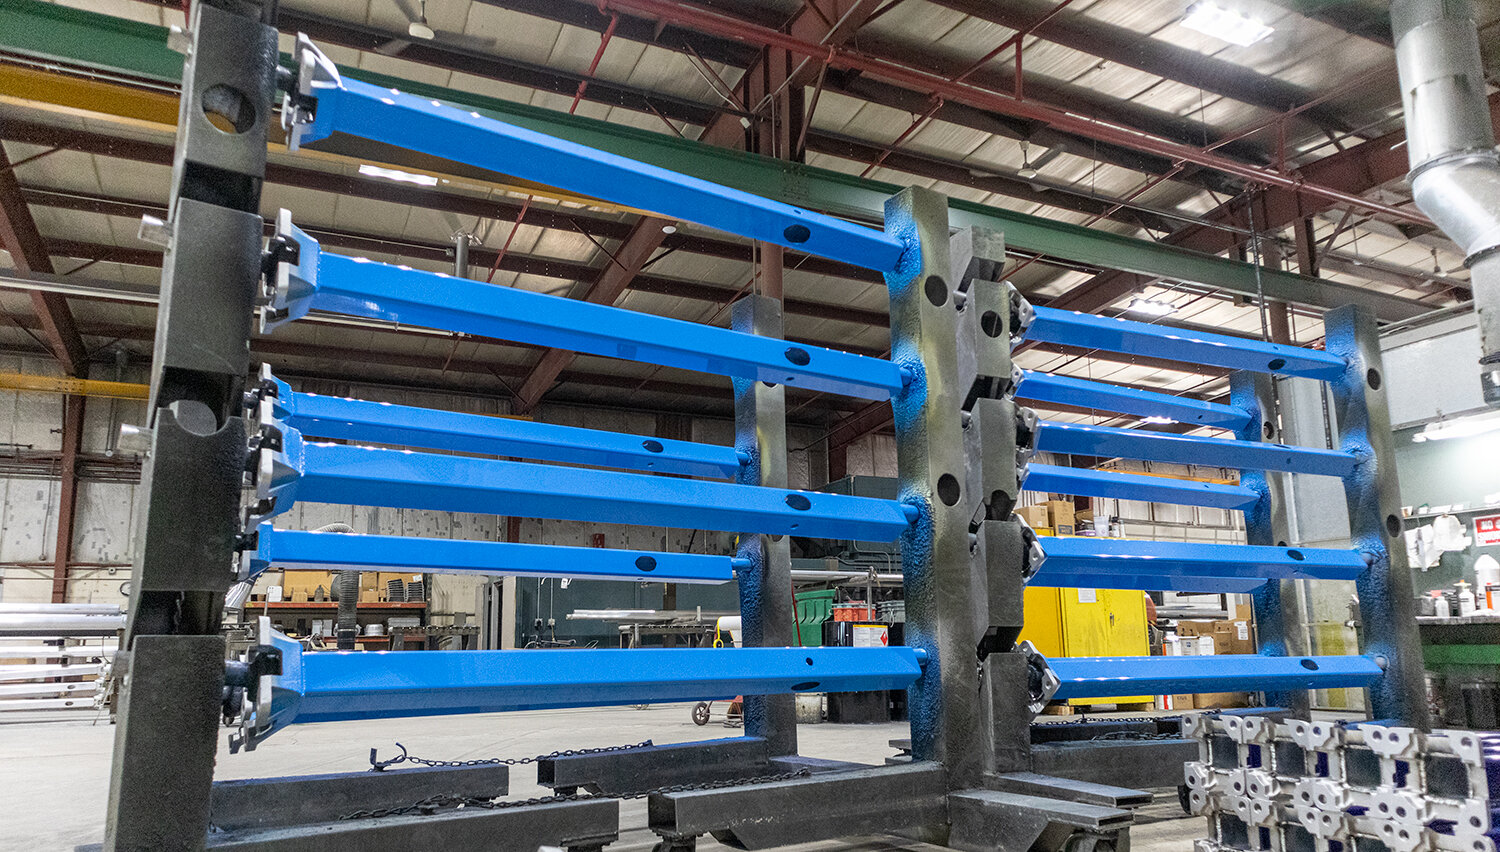 NAFCO's light pole production facility based in Fond du Lac, Wisconsin